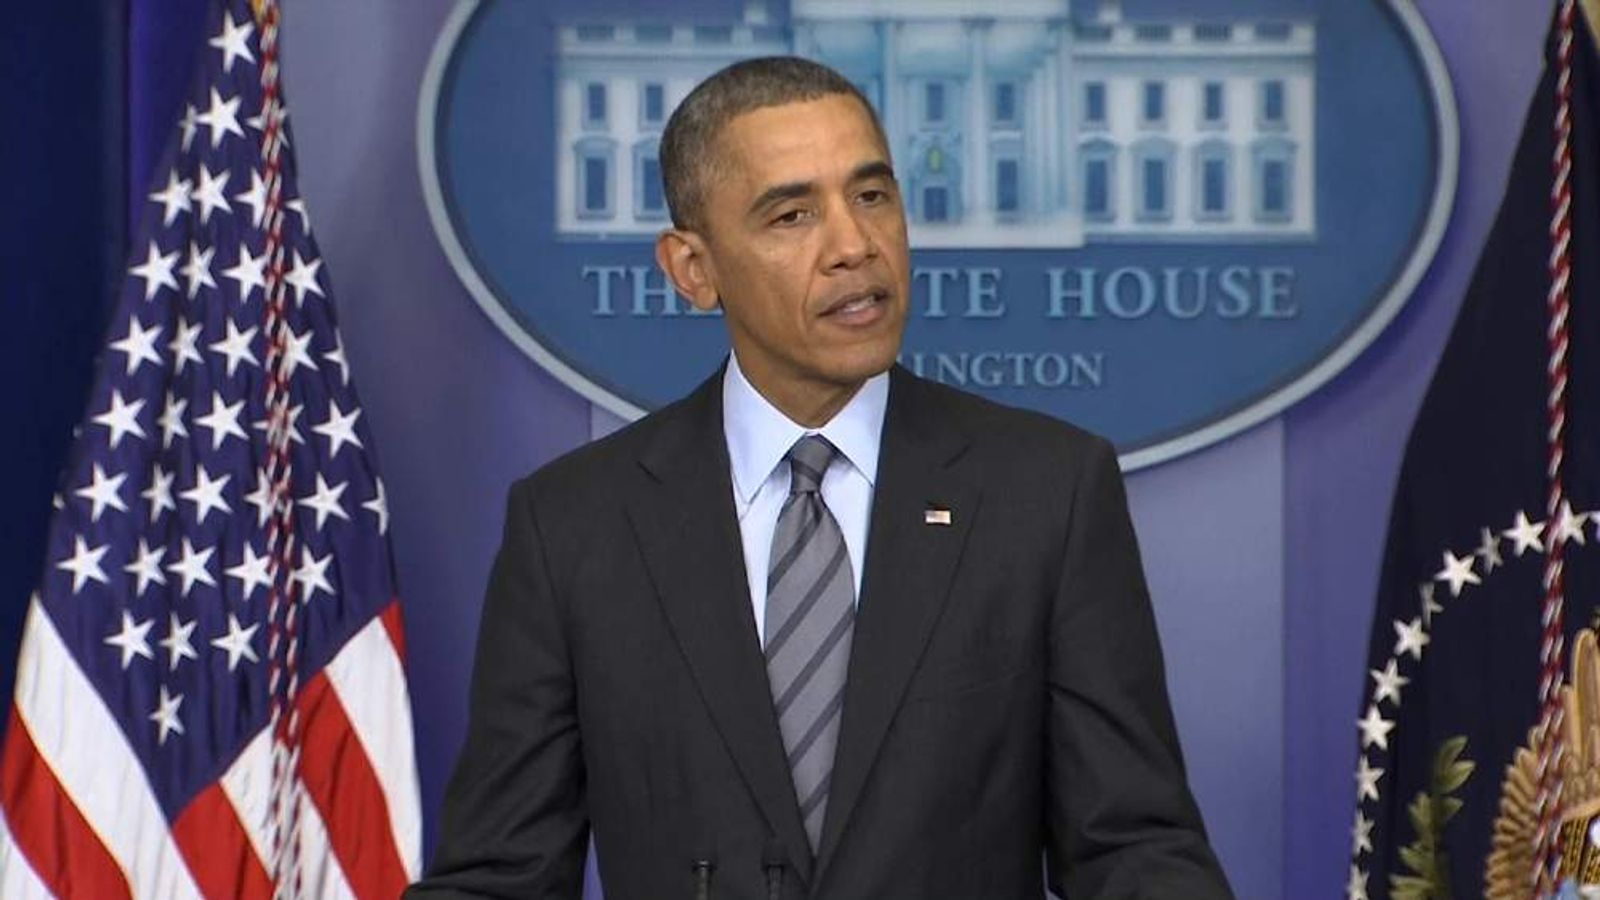 President Obama delivers a statement on the crisis in Ukraine.